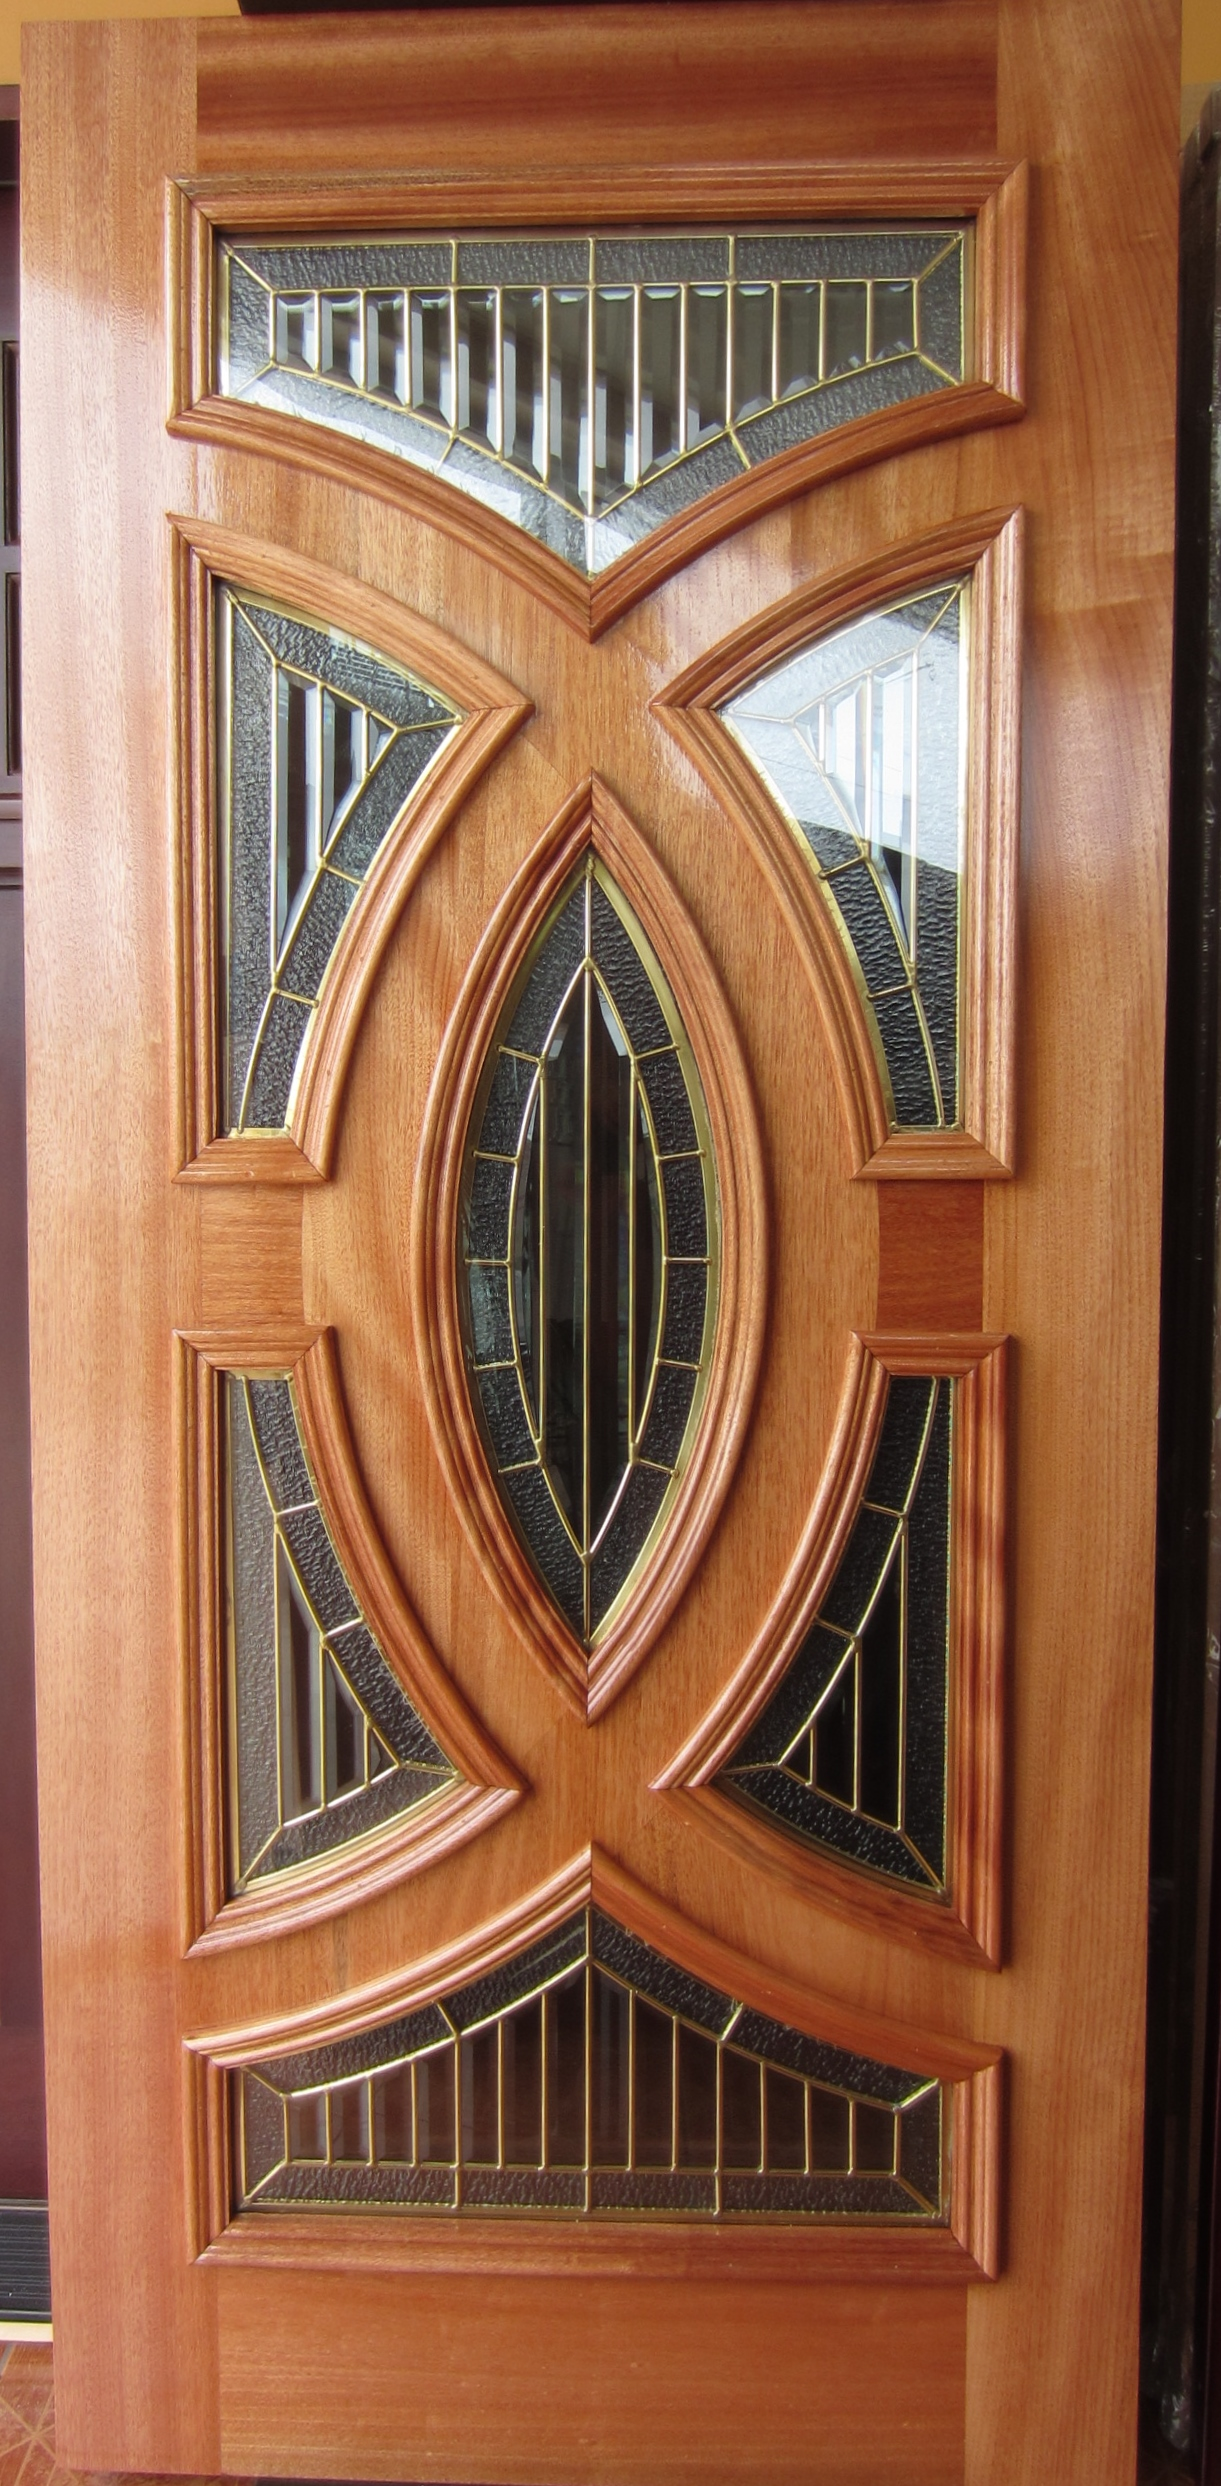 2486 #9C612F Doors Houston Doors Front Doors Houston   Doors Wood  image Wooden Doors Houston 45731221